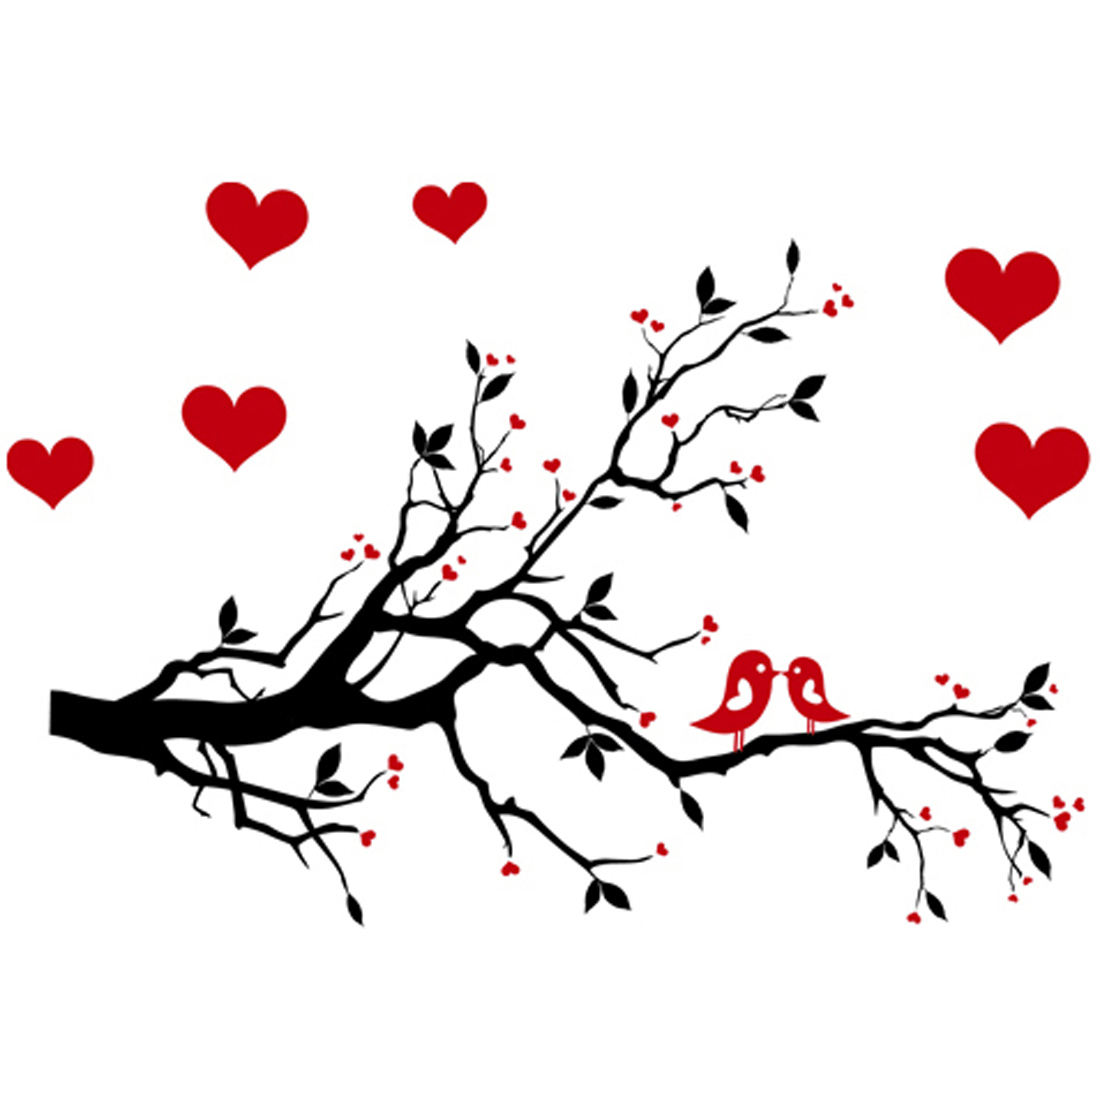 Living Room Art Decor PVC Branches Heart Pattern Adhesive Wall Decor Sticker Decal